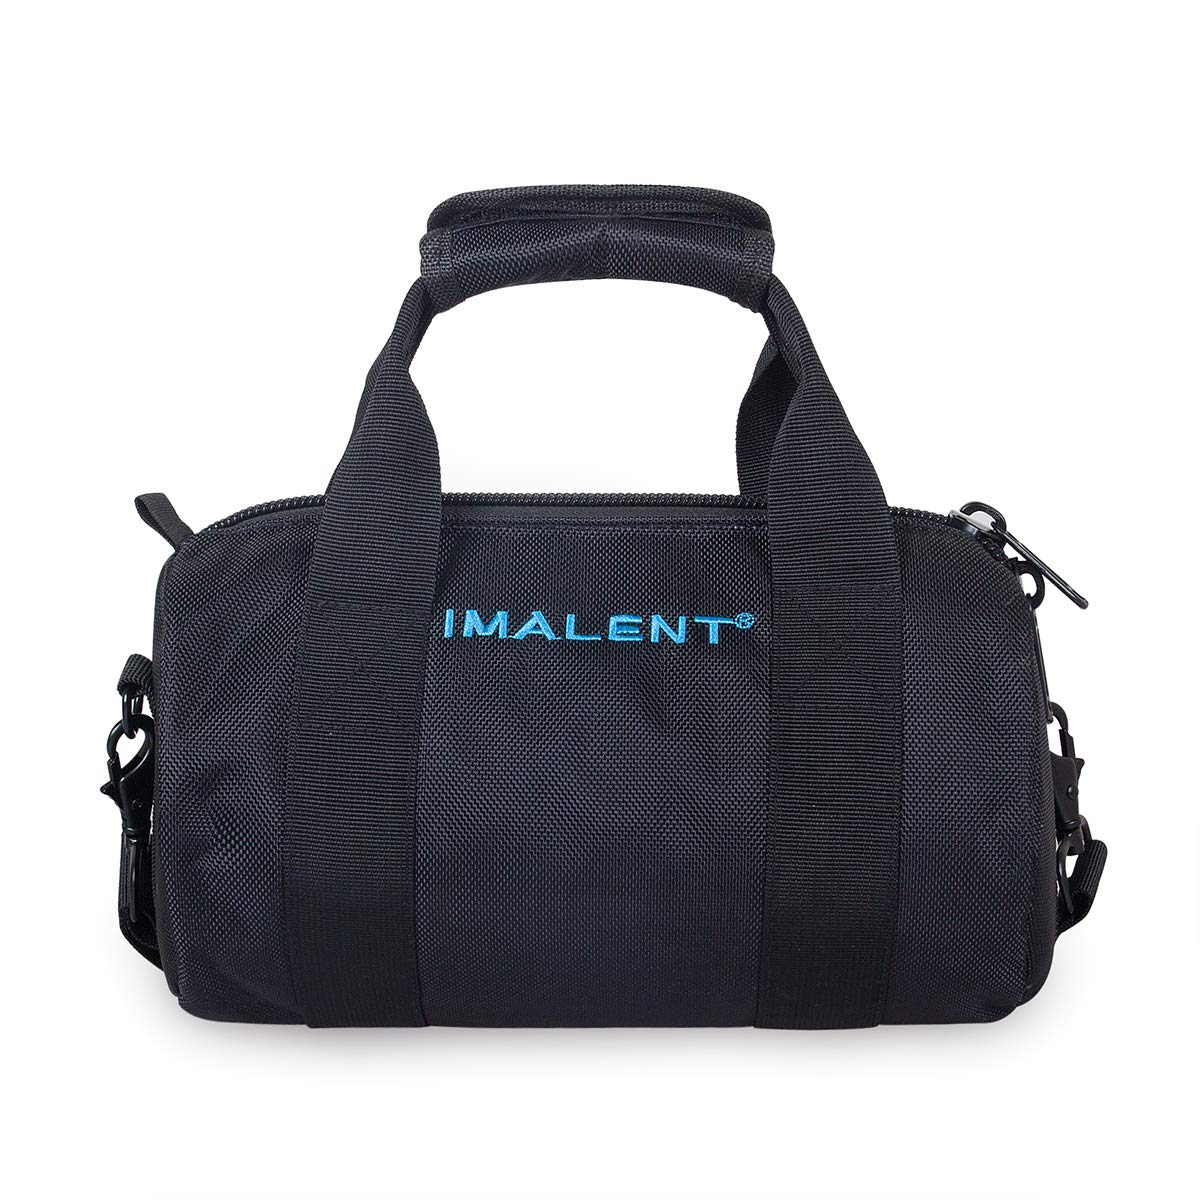 IMALENT Torch Bag with Internal Zippered Compartment,Protecting for MS12 DX80 R90C Flashlight,Sports Gym Travel Duffel Bag Backpack